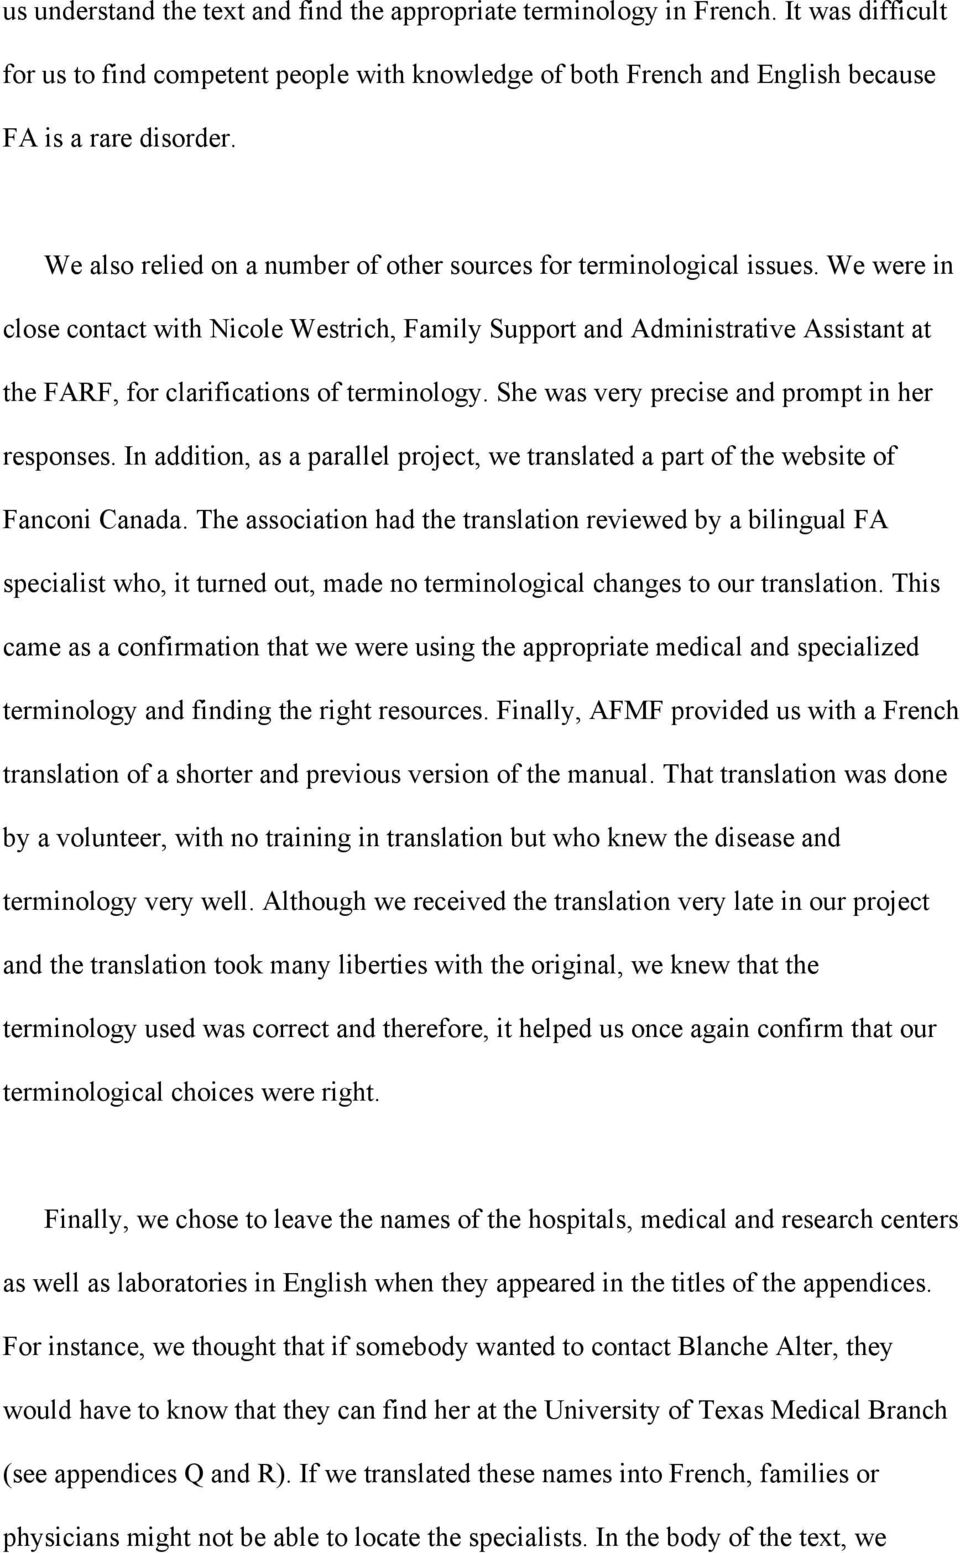 We were in close contact with Nicole Westrich, Family Support and Administrative Assistant at the FARF, for clarifications of terminology. She was very precise and prompt in her responses.